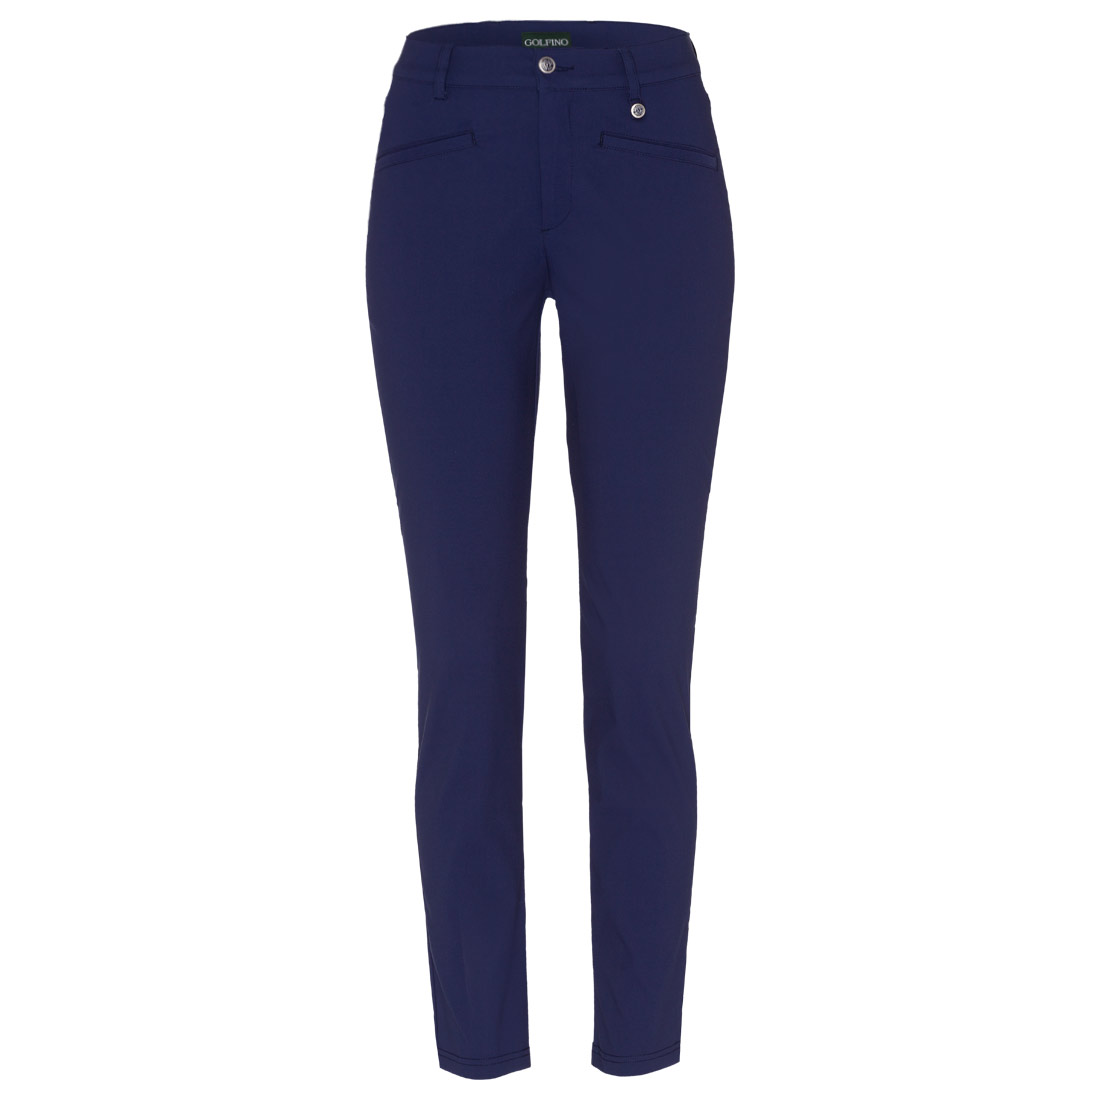 Ladies' 7/8 length trousers